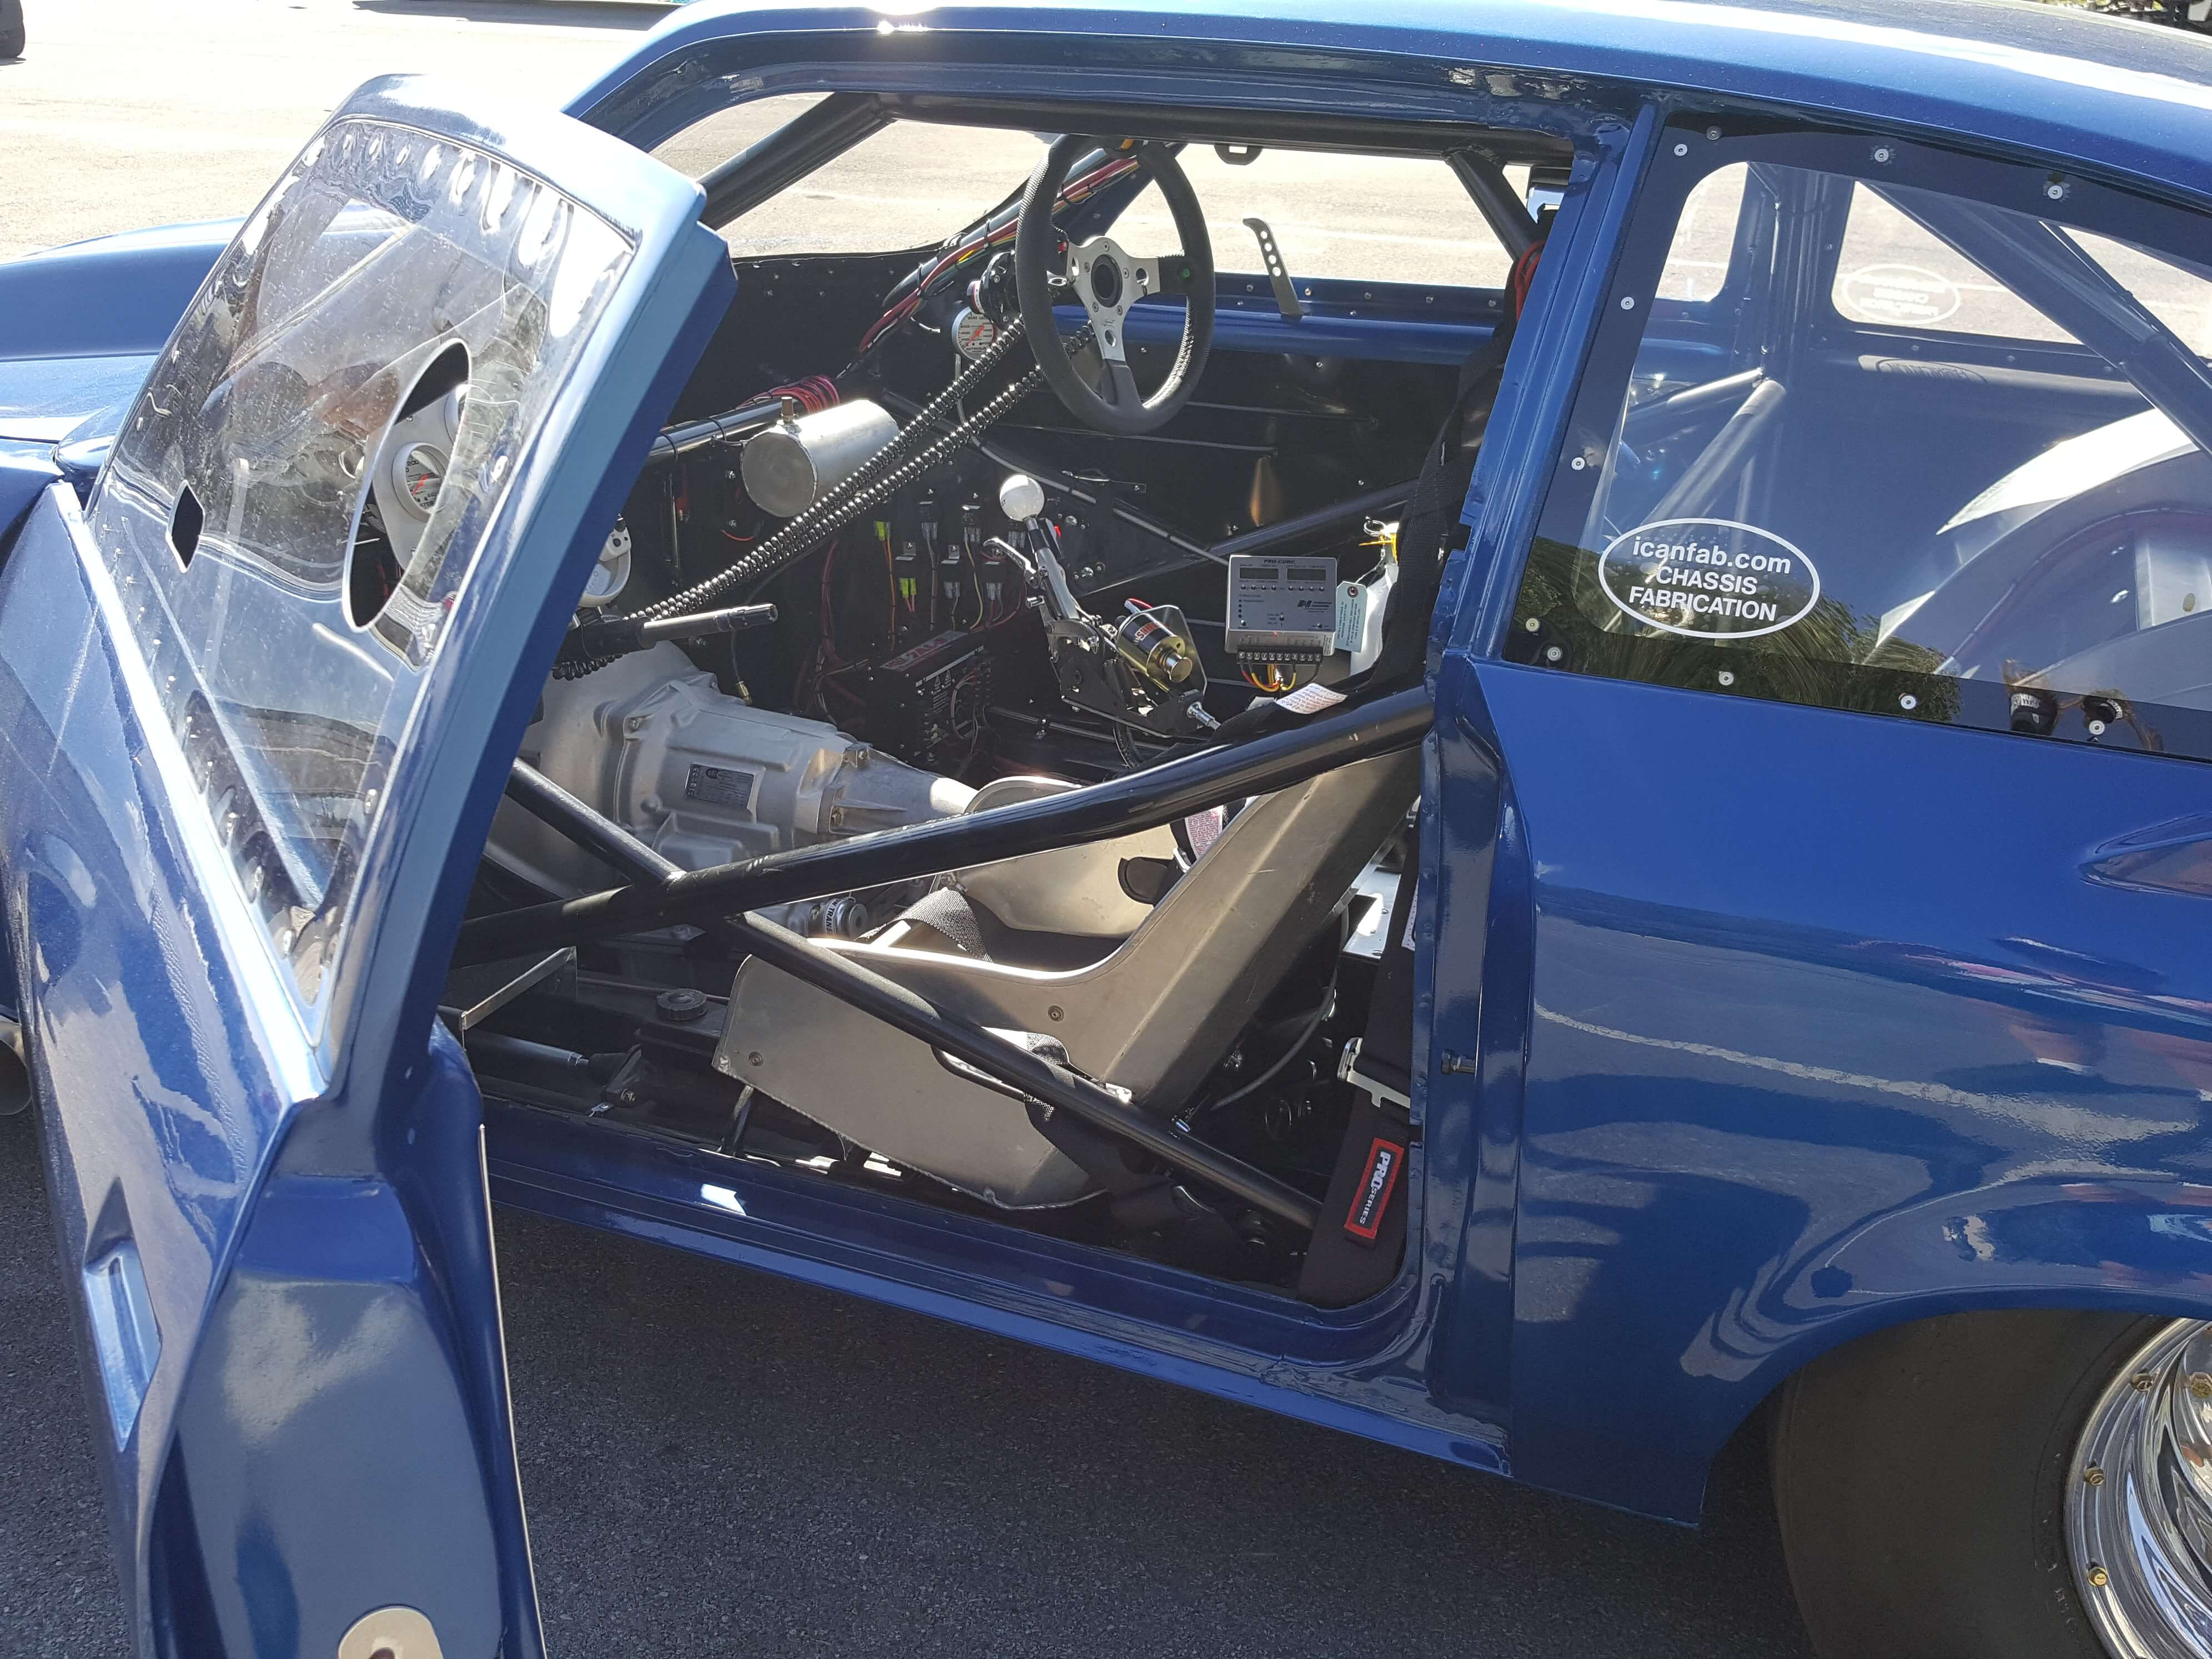 Drag Racing Cars For Sale Chassis Fabrication The Winning Starts Here